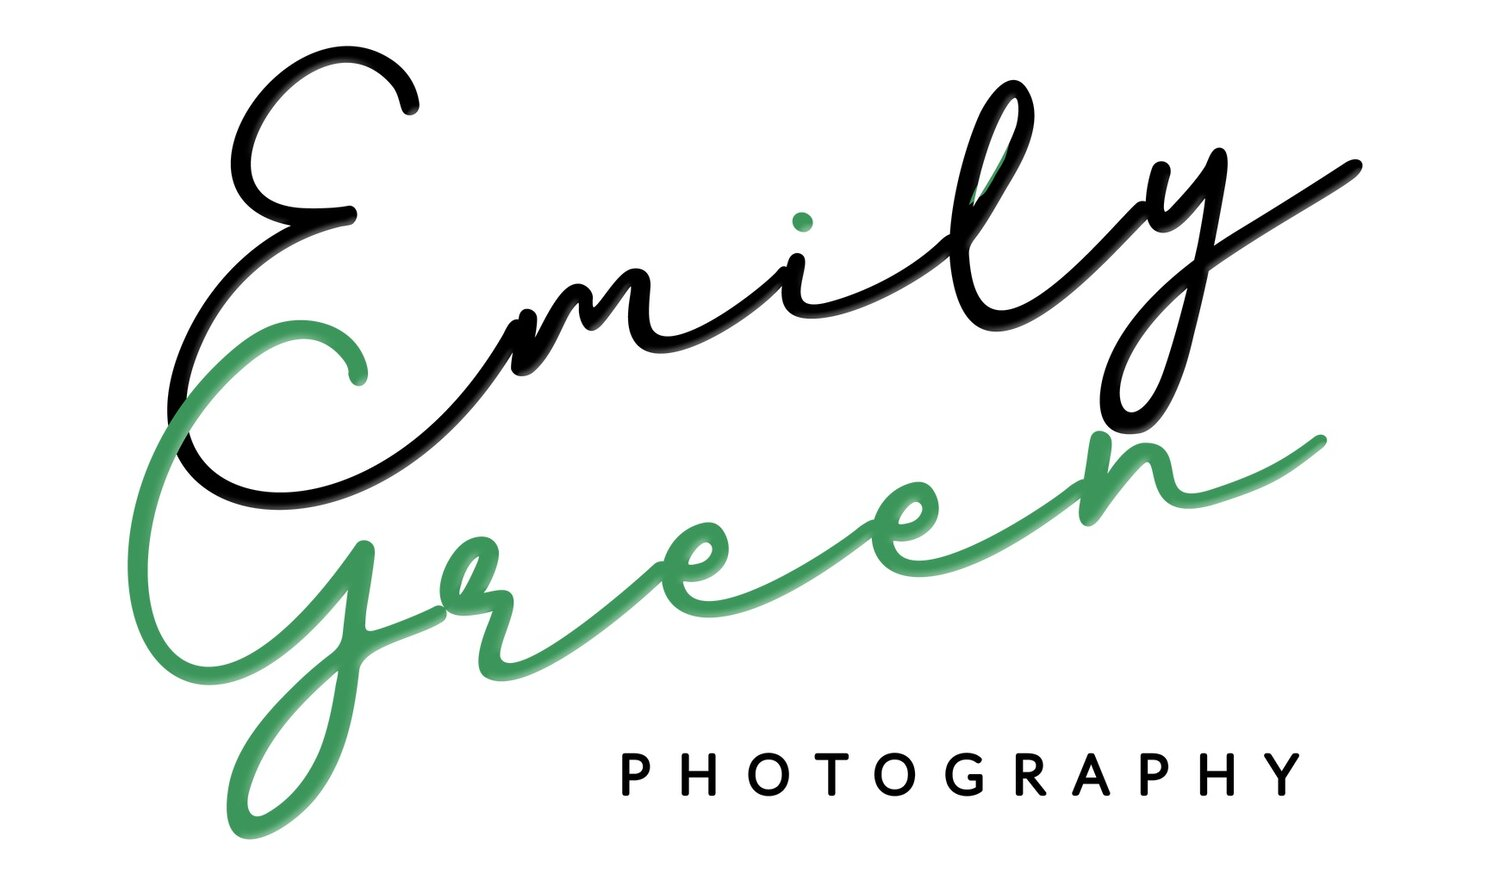 Emily Green Photography